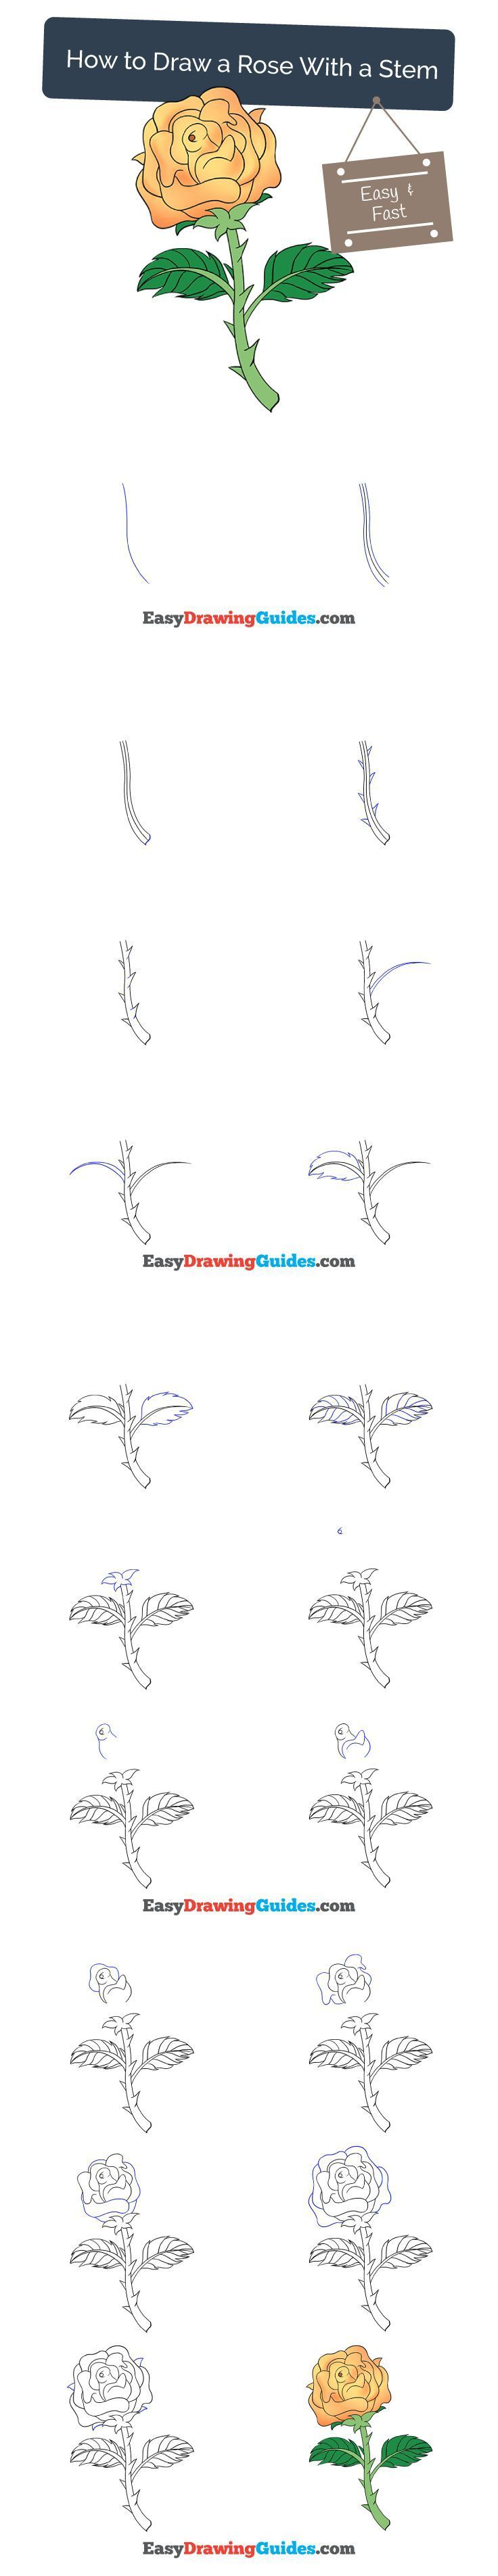 Best 25 easy to draw rose ideas on pinterest how to for How to draw a rose step by step for beginners